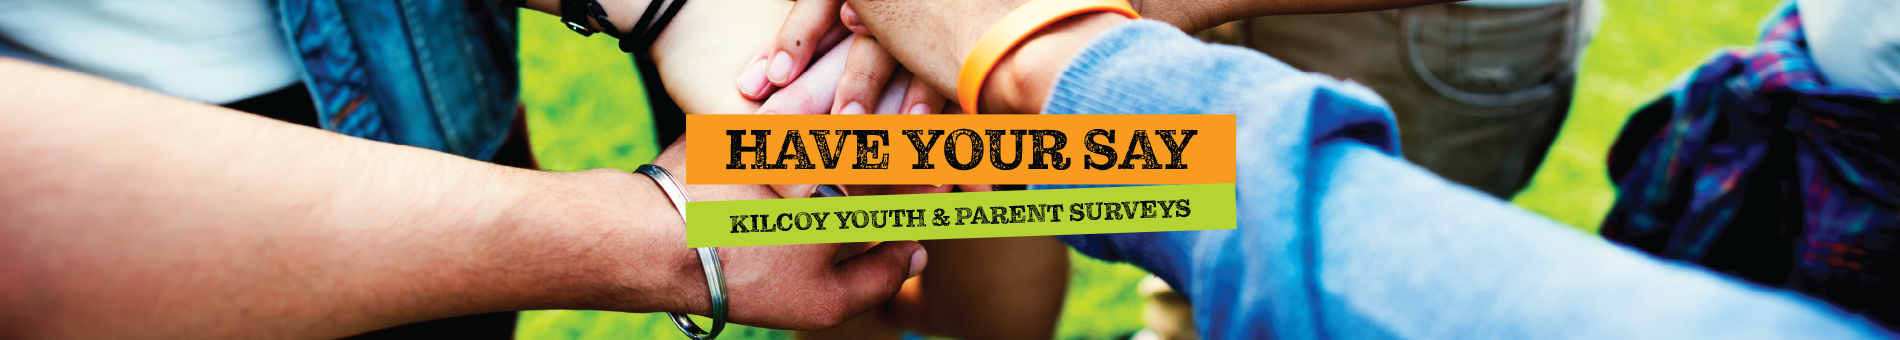 Youth survey banner